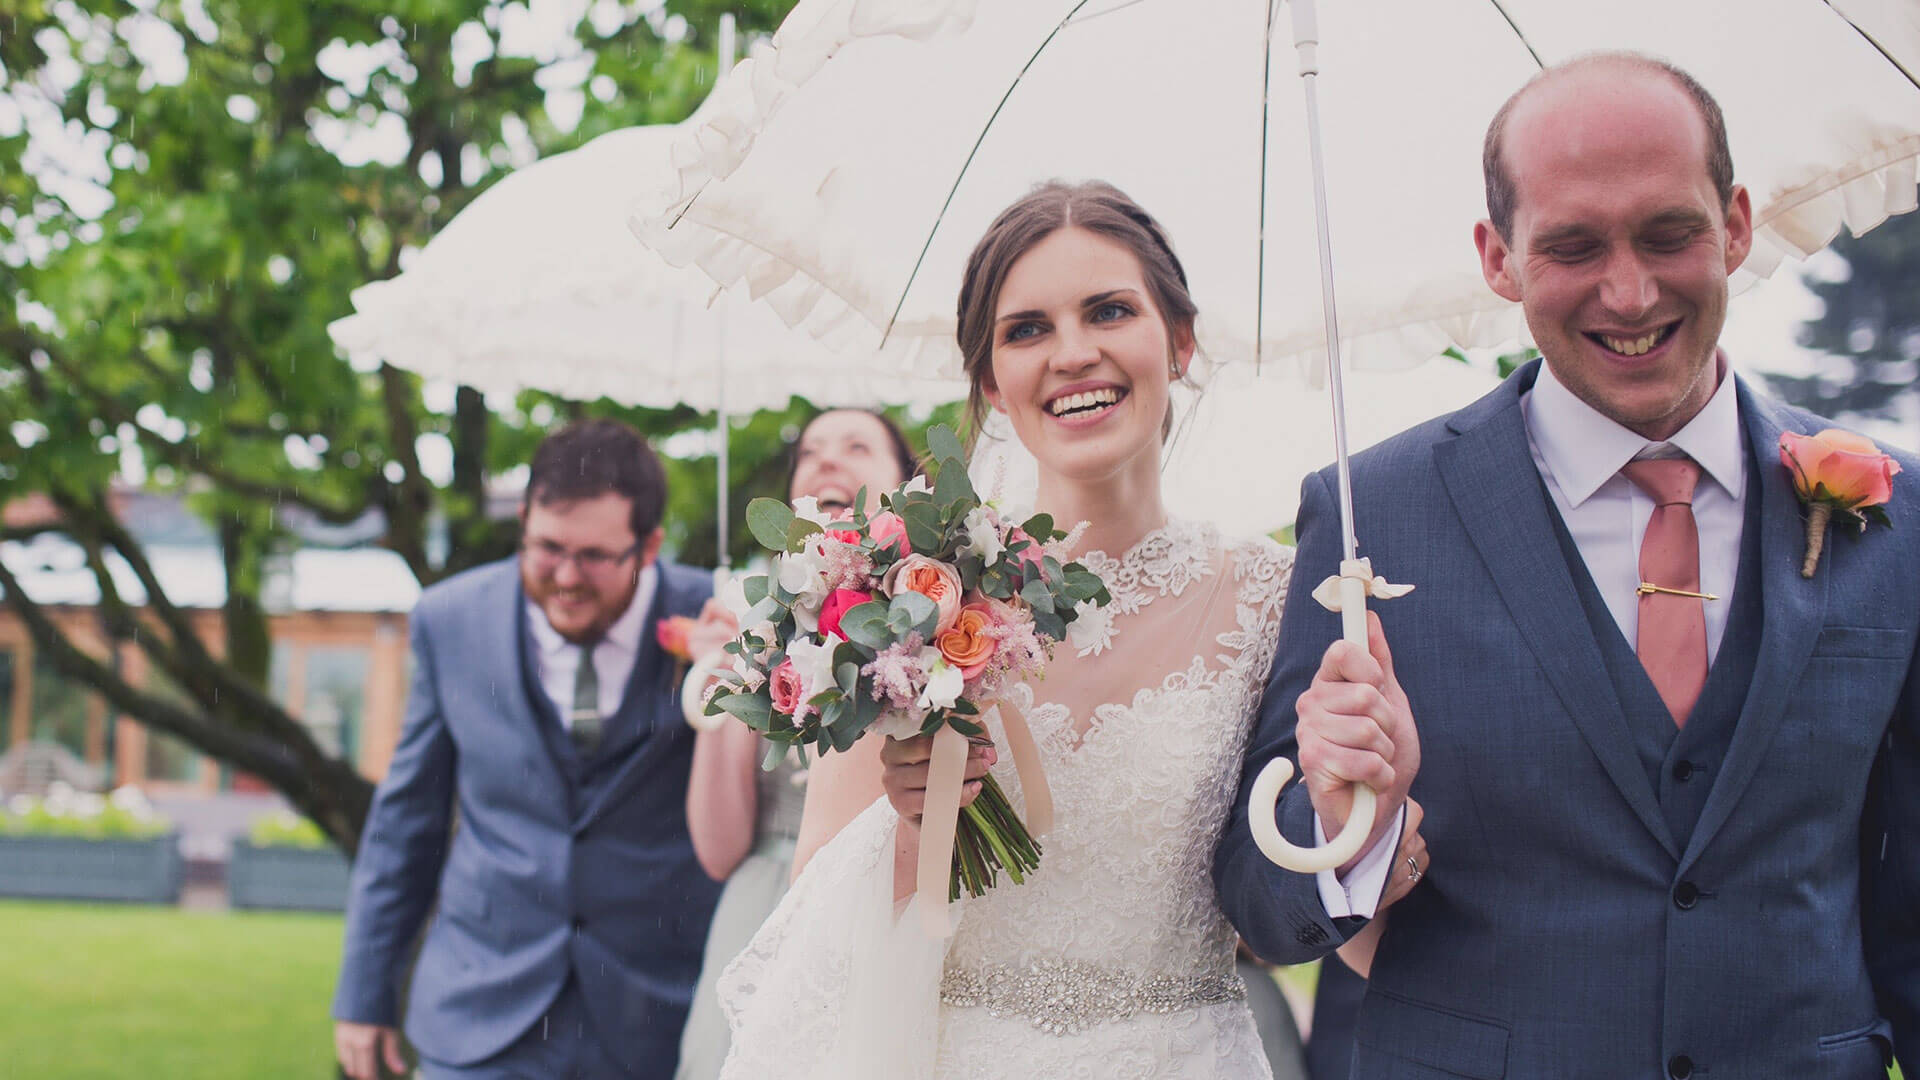 A bride carries a vintage wedding umbrella with gorgeous spring wedding flowers - pink flowers